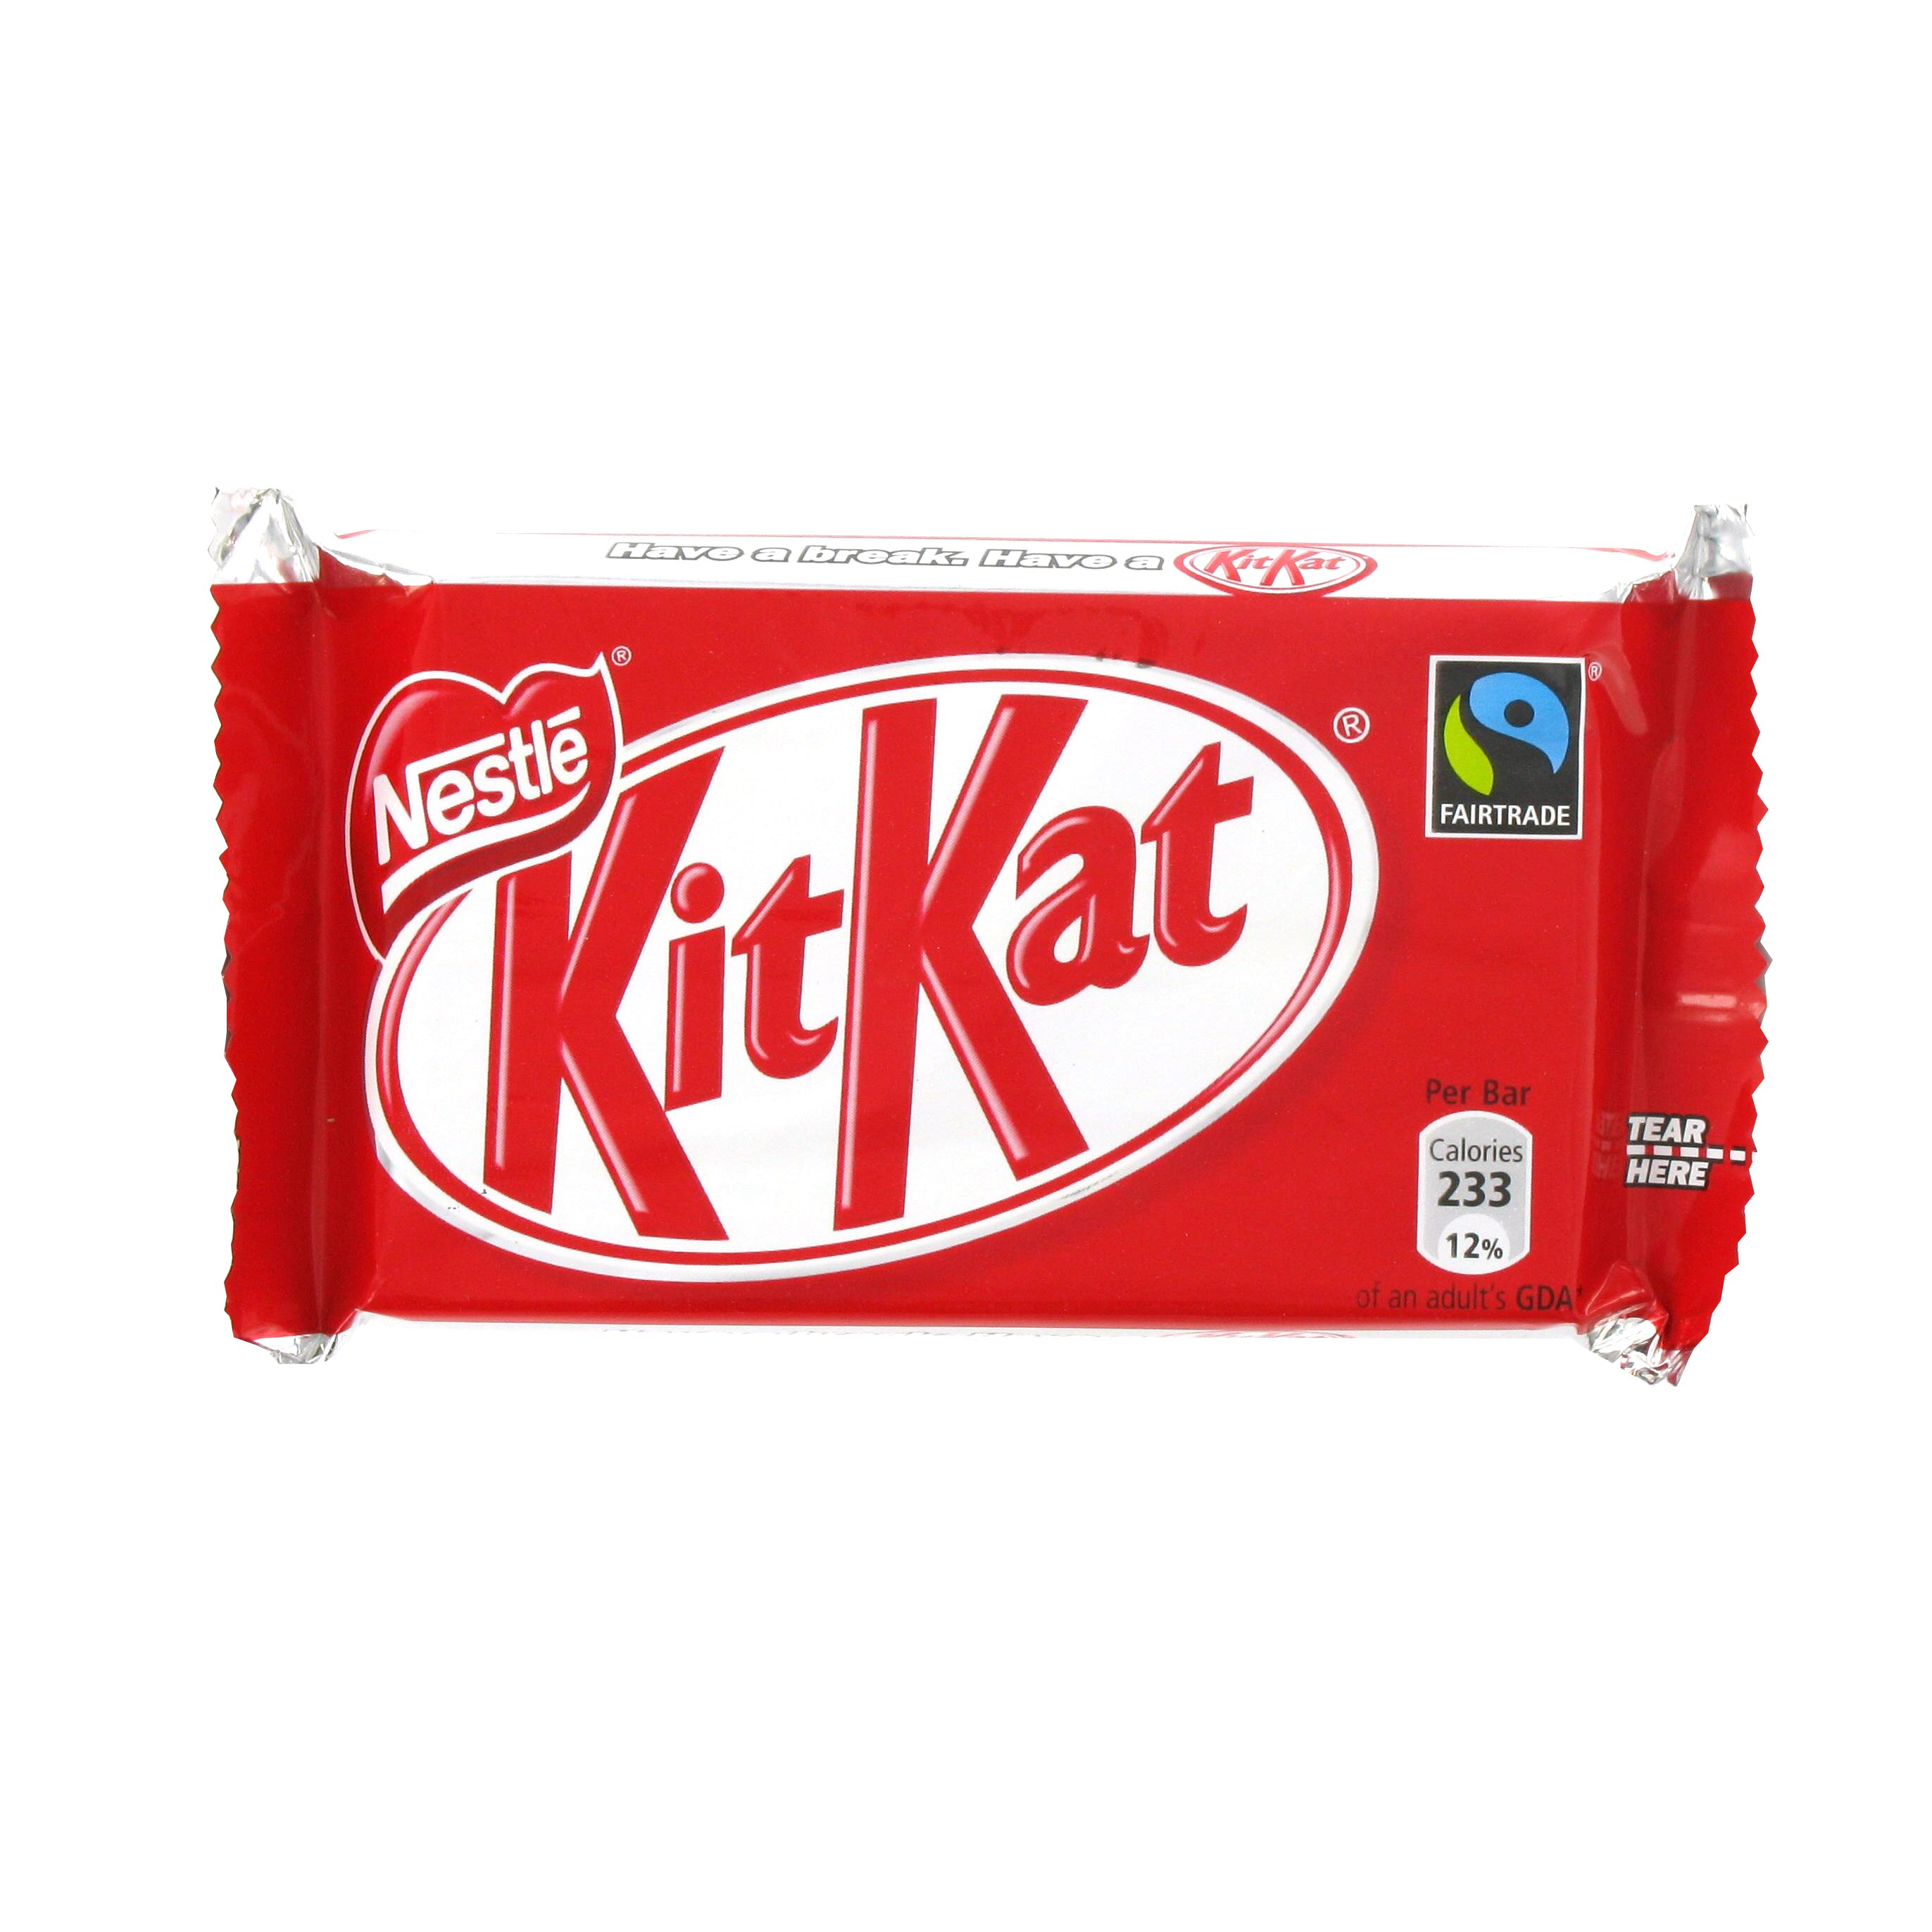 What You Don't Know About Kit Kat Bars